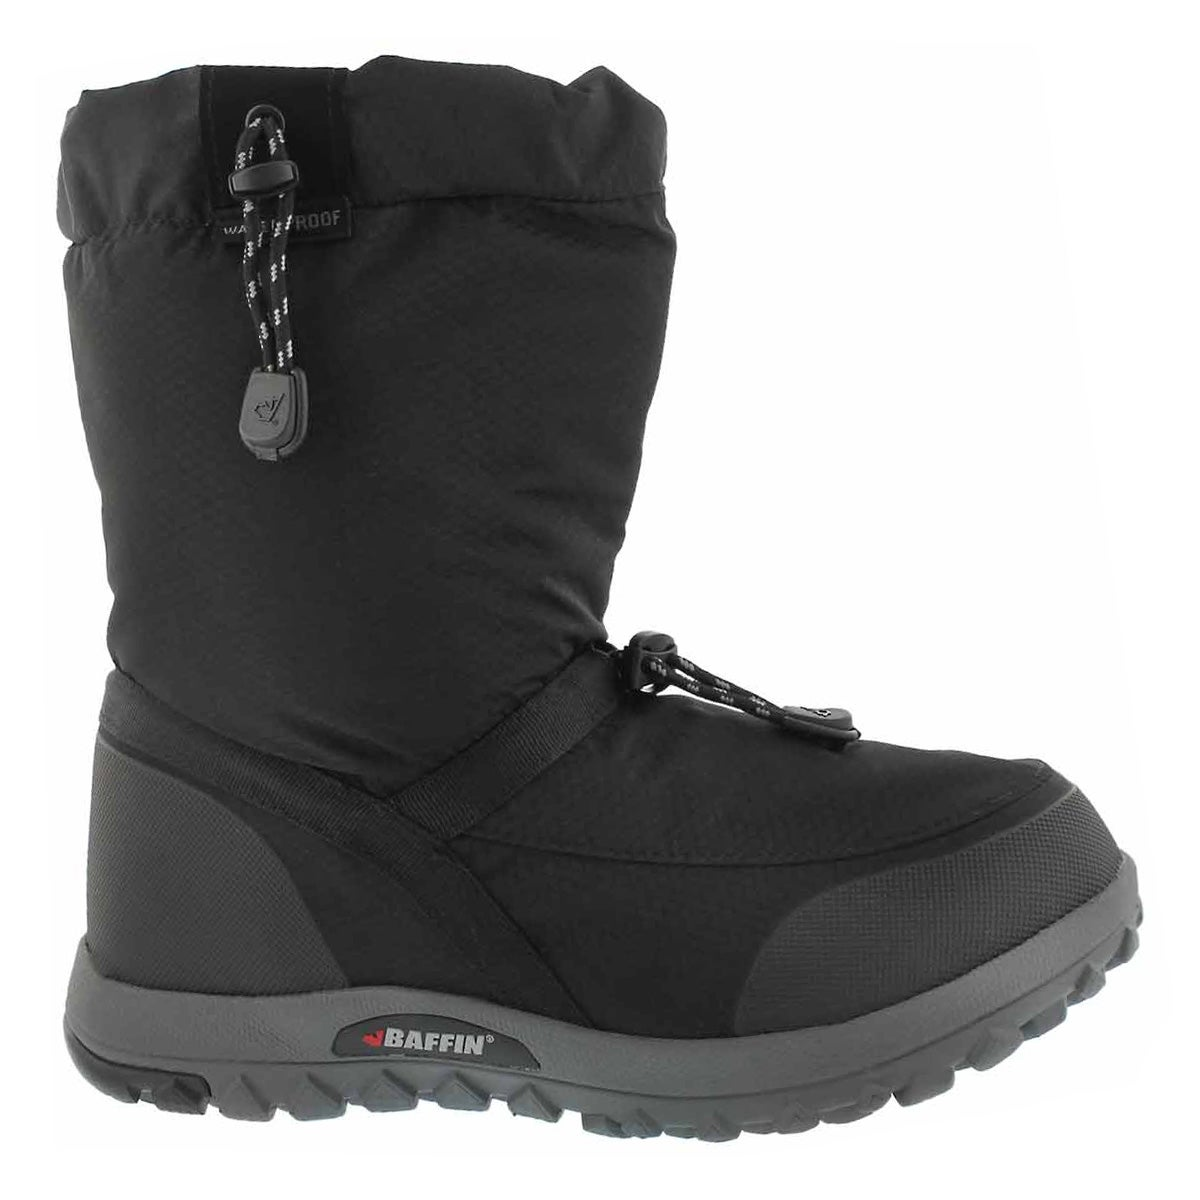 Women's EASE black waterproof pull on winter boots